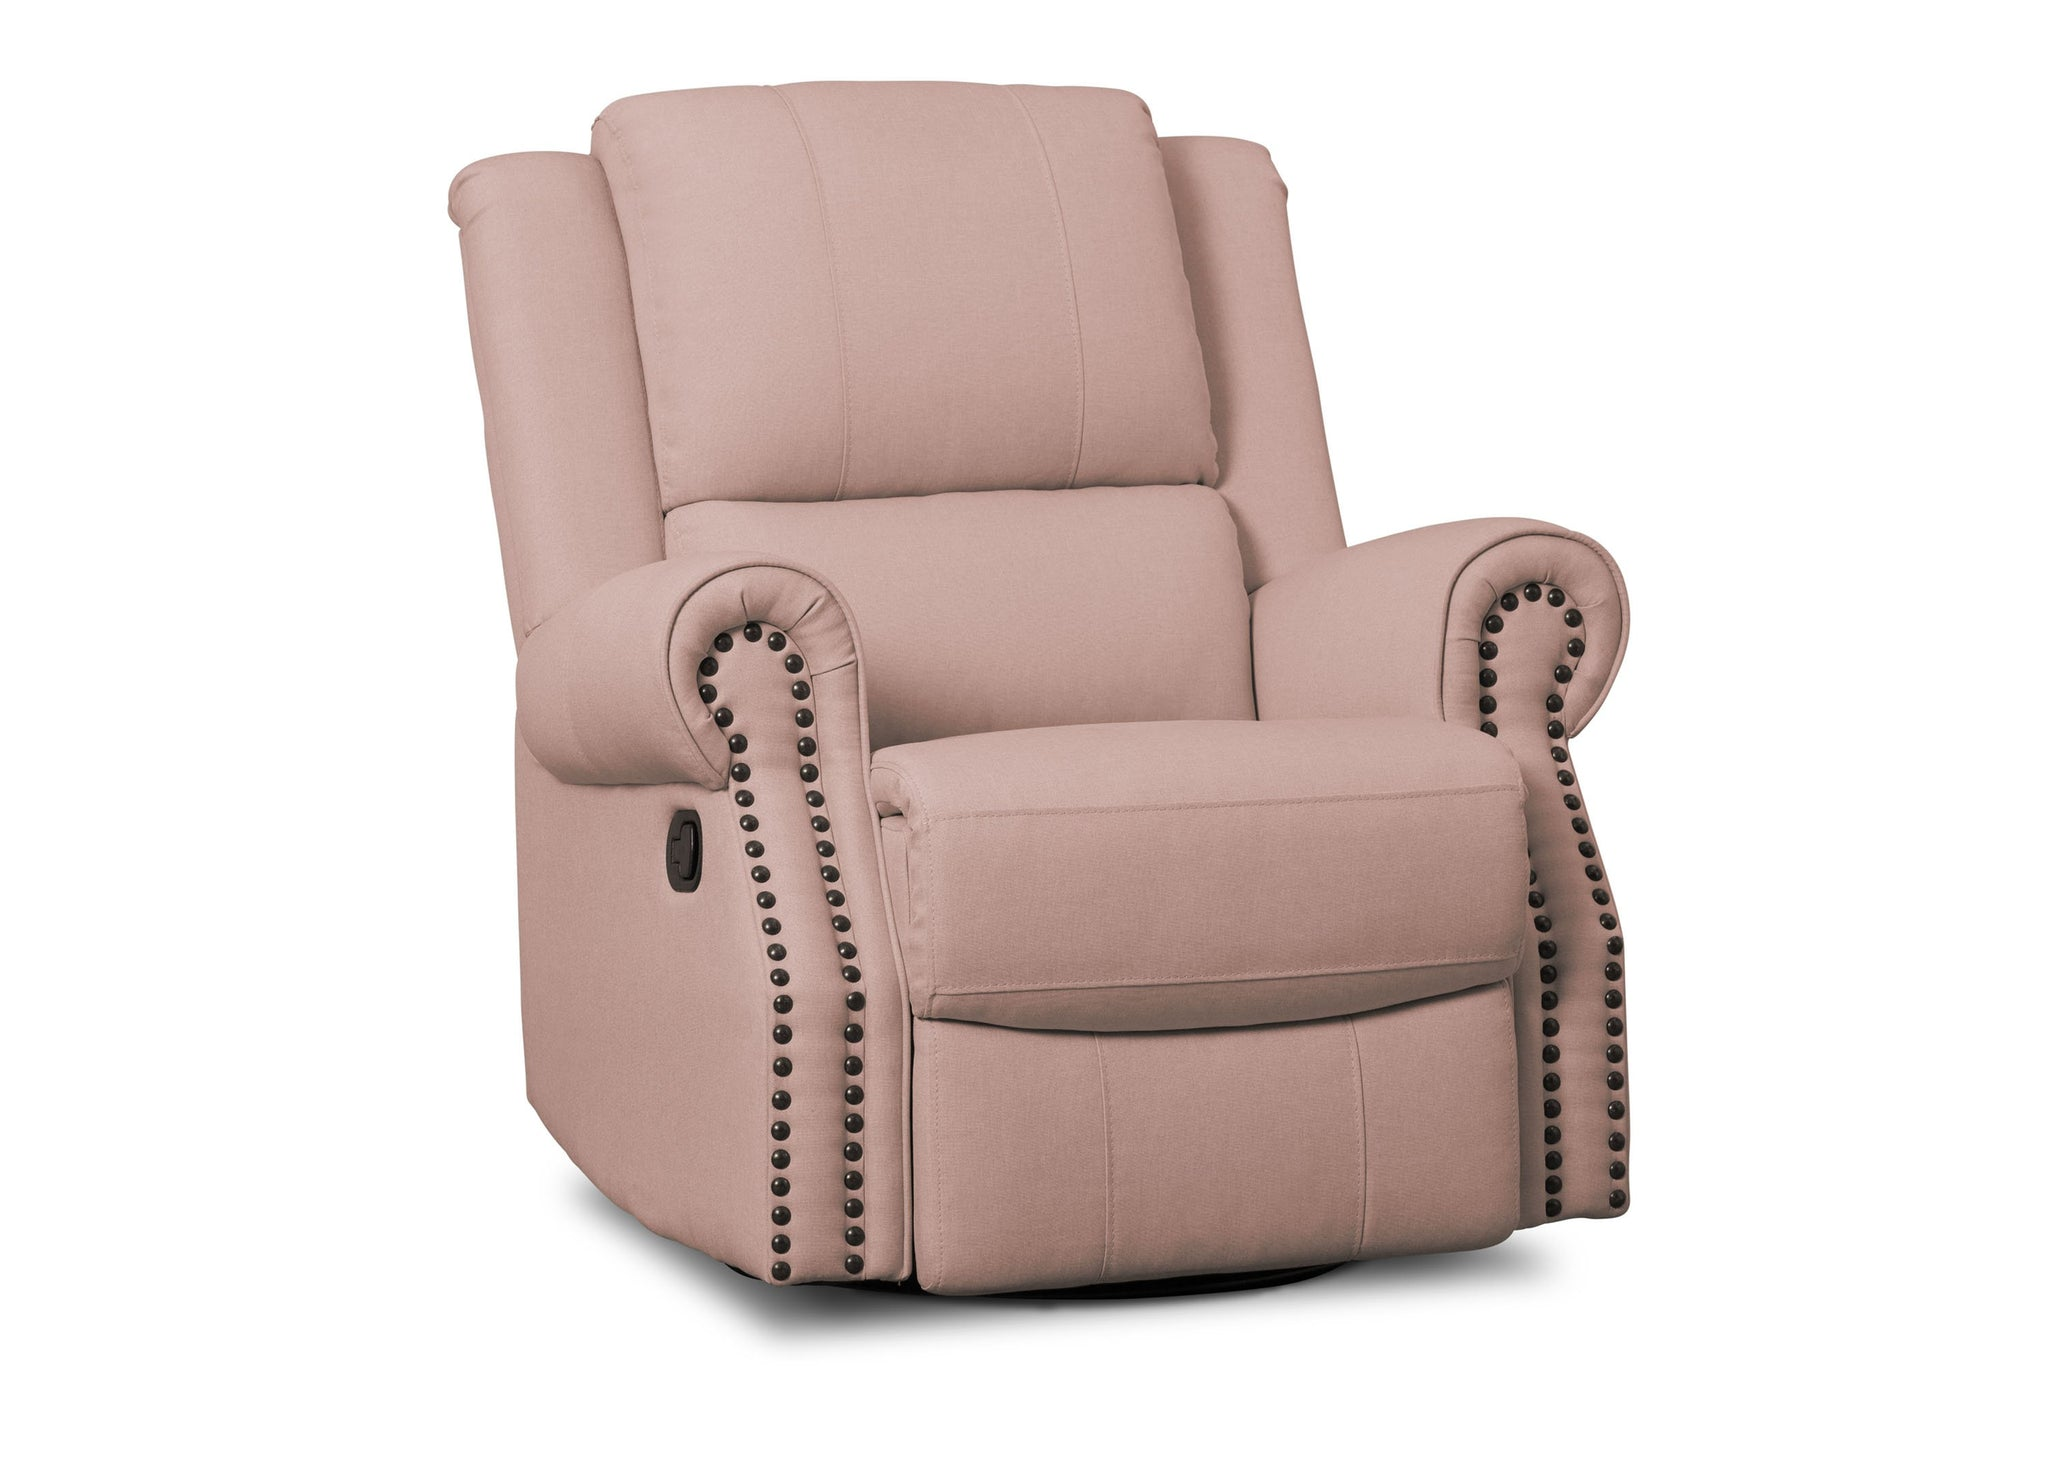 Delta Children Blush (636) Dexter Nursery Recliner Swivel Glider Chair (W2524310C), Right View, a2a